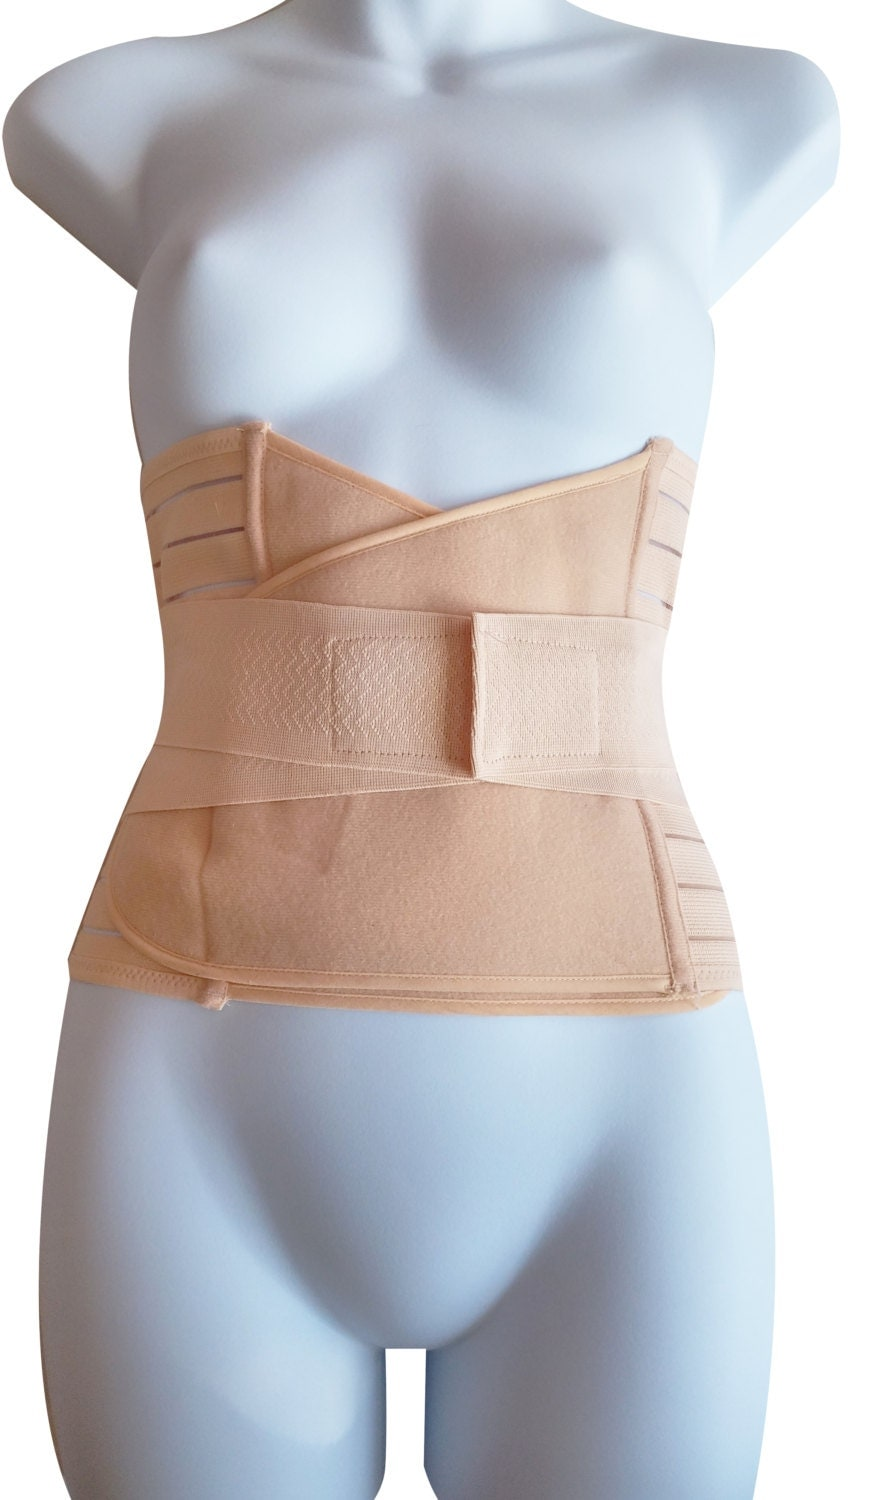 Postpartum Maternity After Pregnancy Post Natal Slimming ReShaping Abdominal Support Belt Belly Tummy Girdle